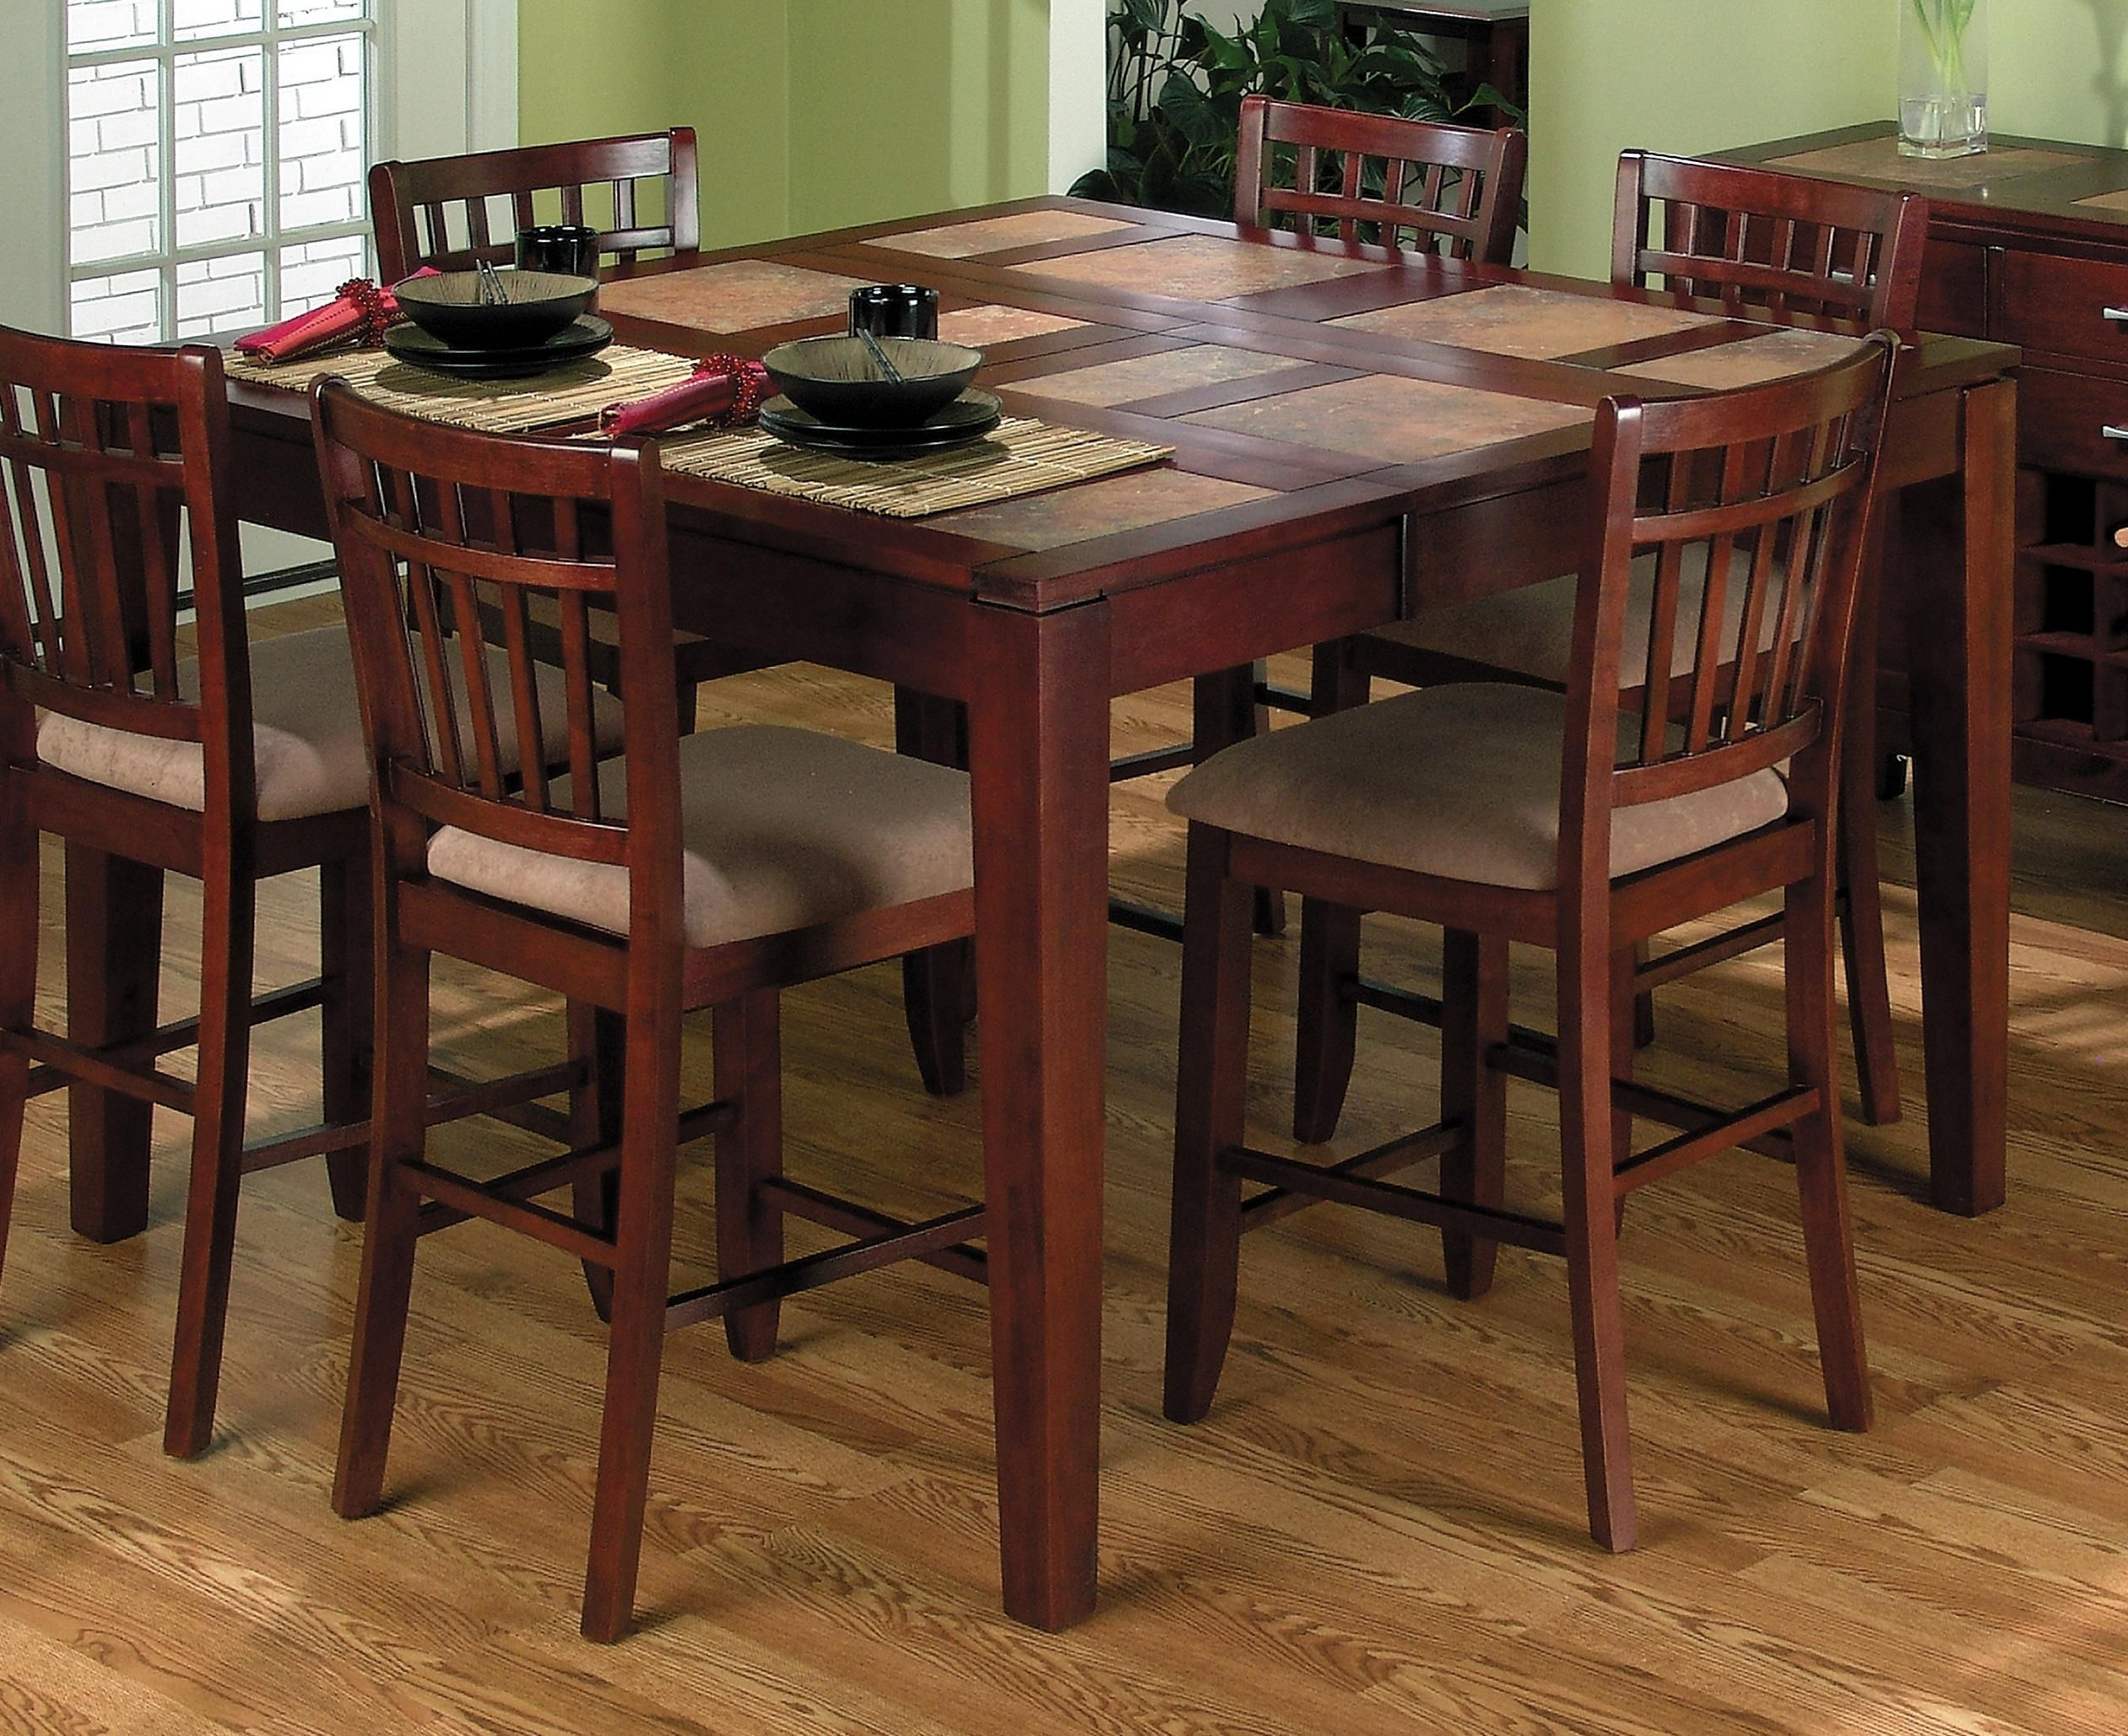 high top dining table with 6 chairs | http://jeremyeatonart